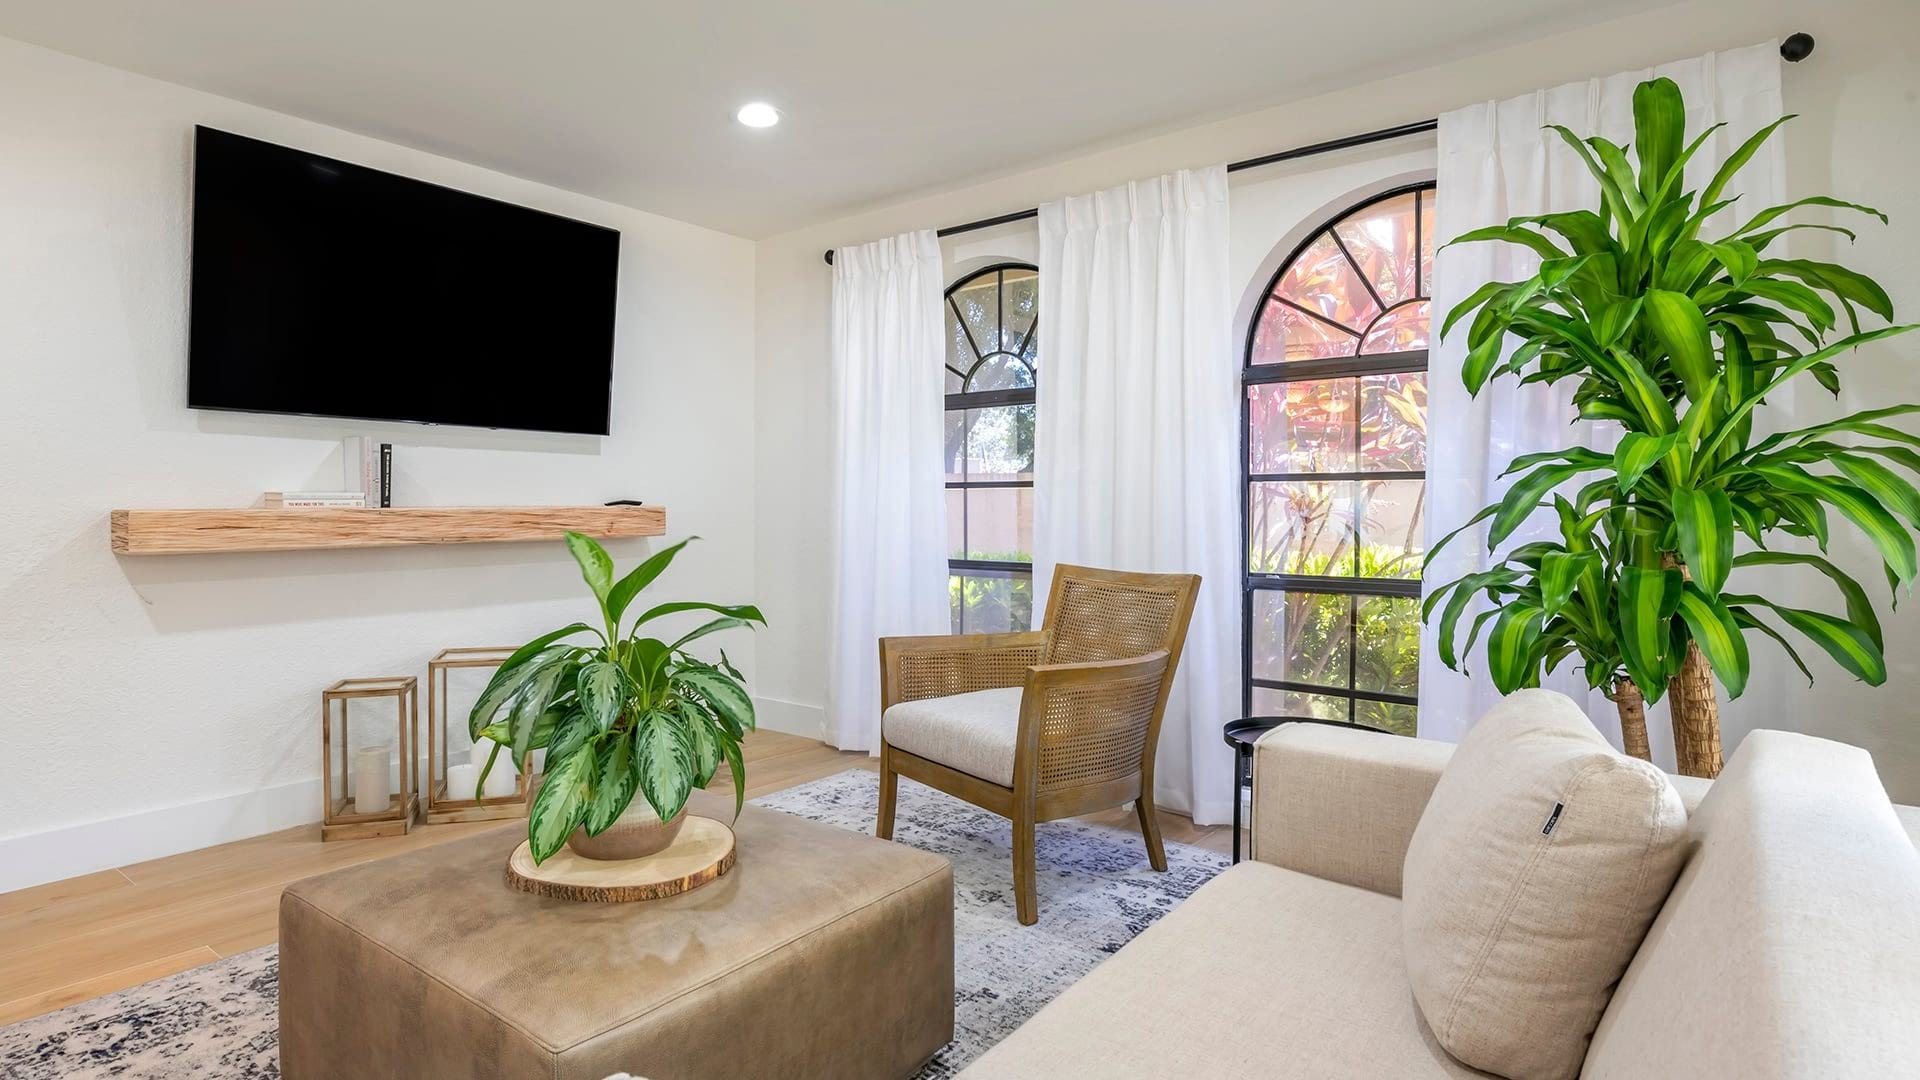 picture windows brighten clubhouse with sofa and wall mounted television